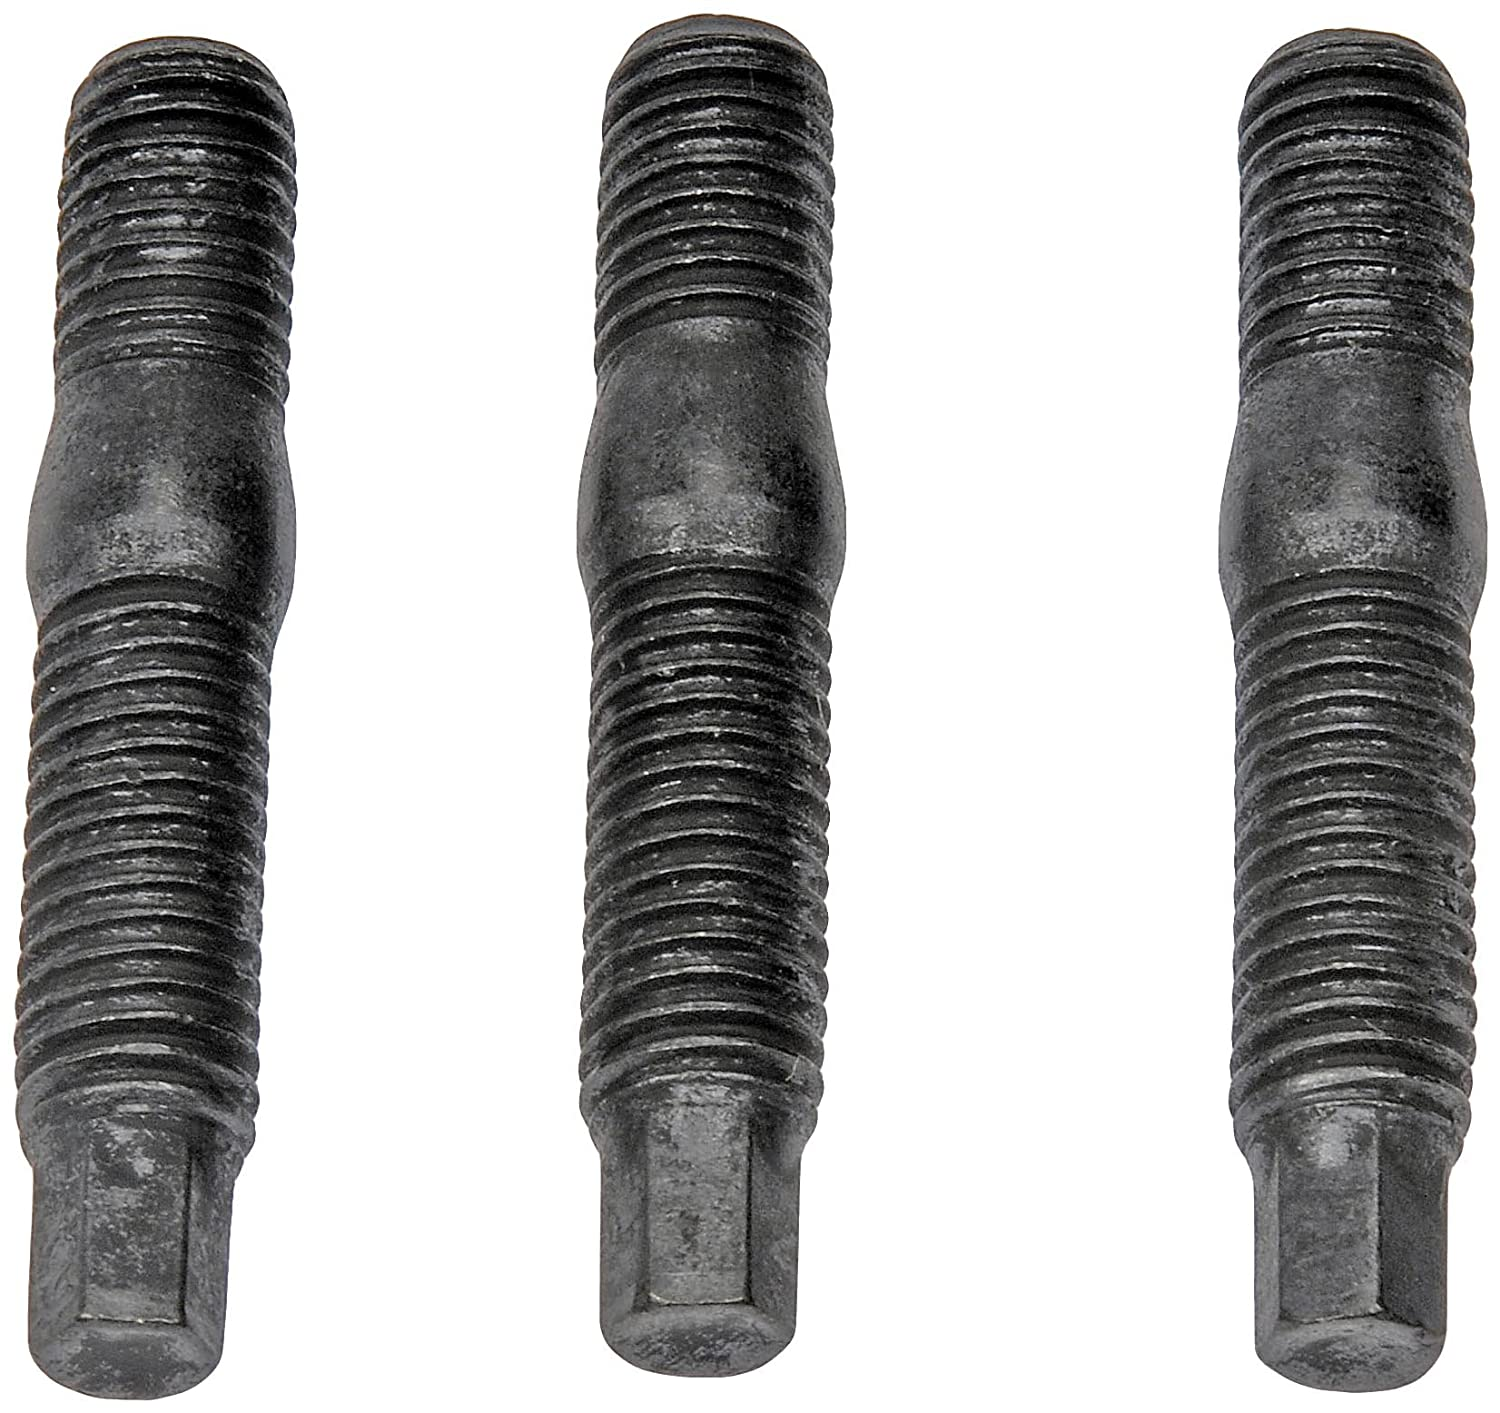 Dorman 675-578 Double Ended Stud 1.50 X 40Mm and M10-1.50 X 16Mm